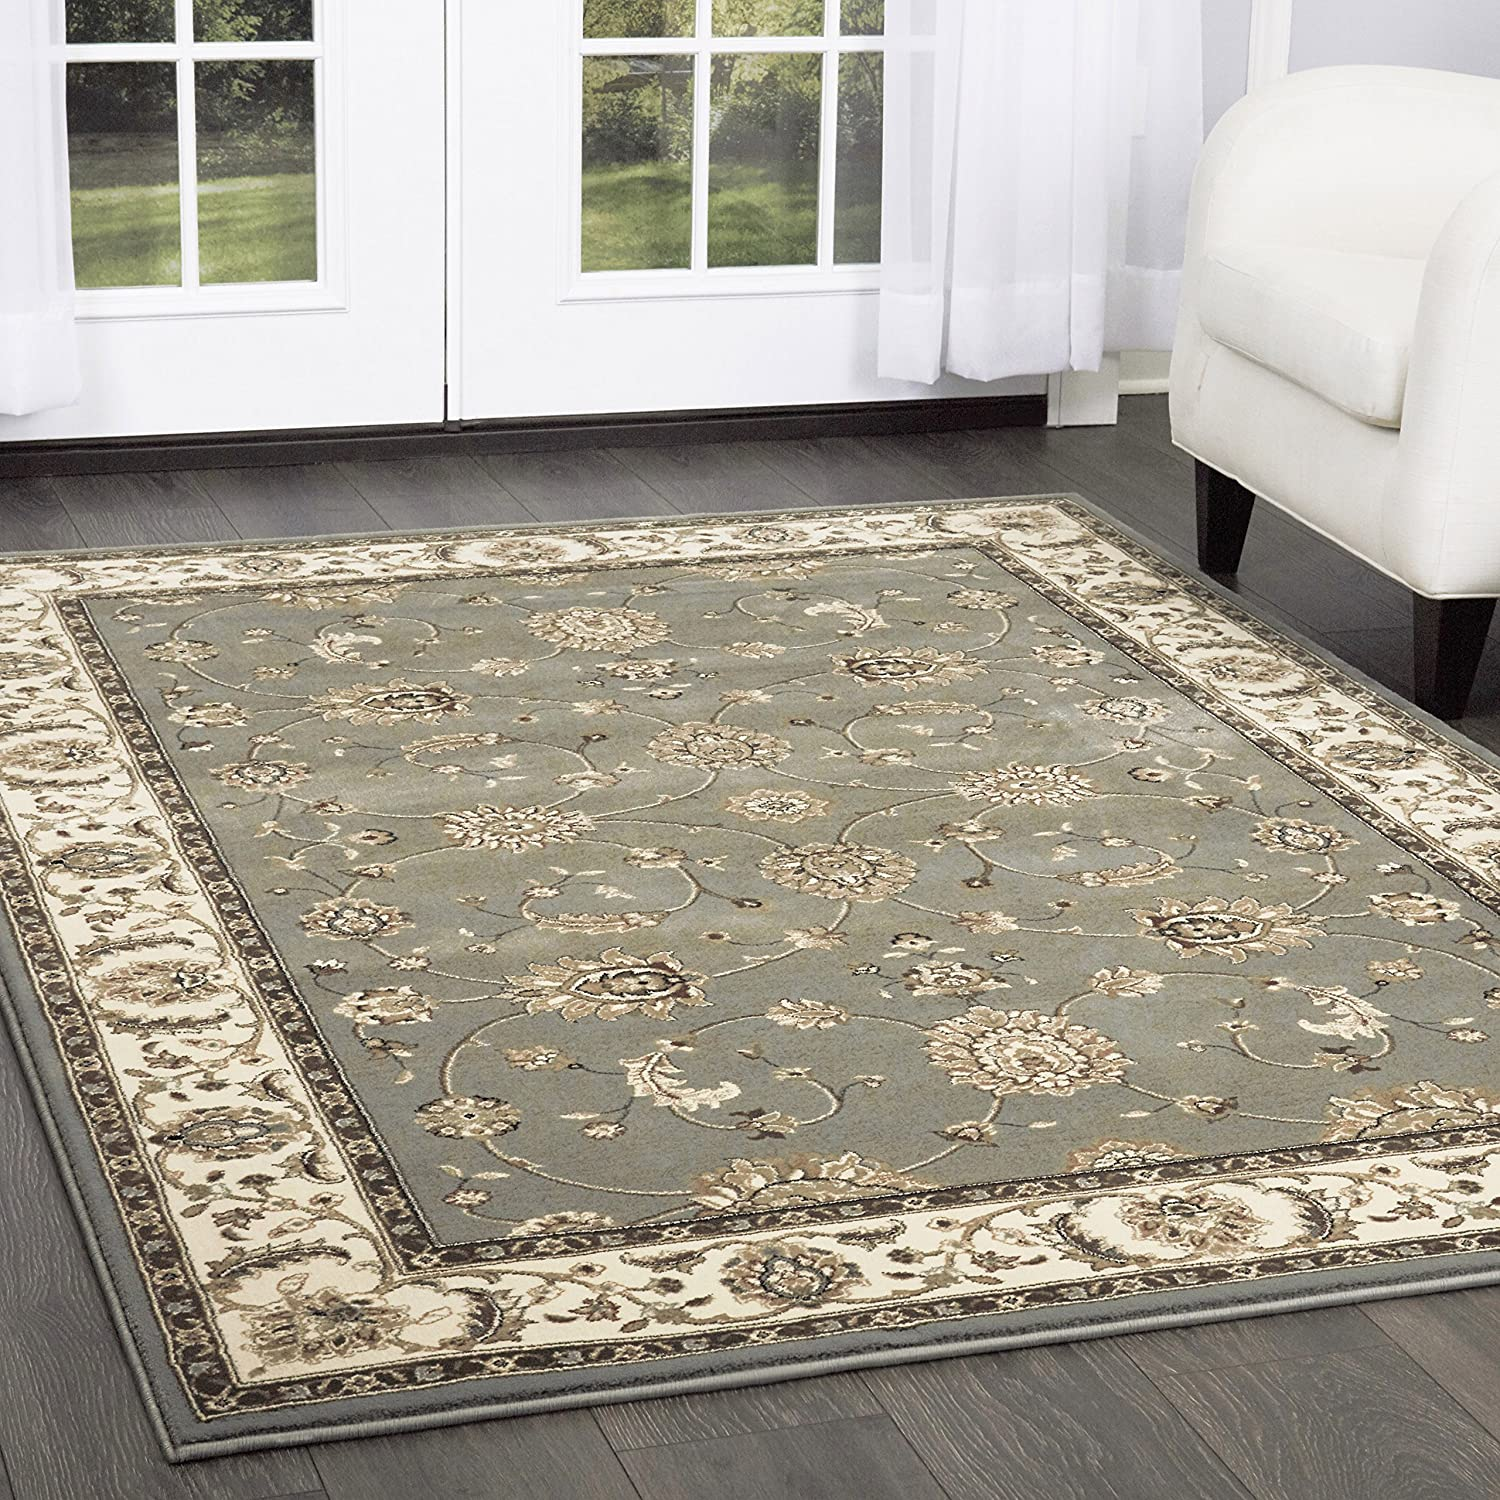 Amazon Com Triumph Fawn Runner Area Rug 2 2 X7 6 Border Gray Beige Furniture Decor